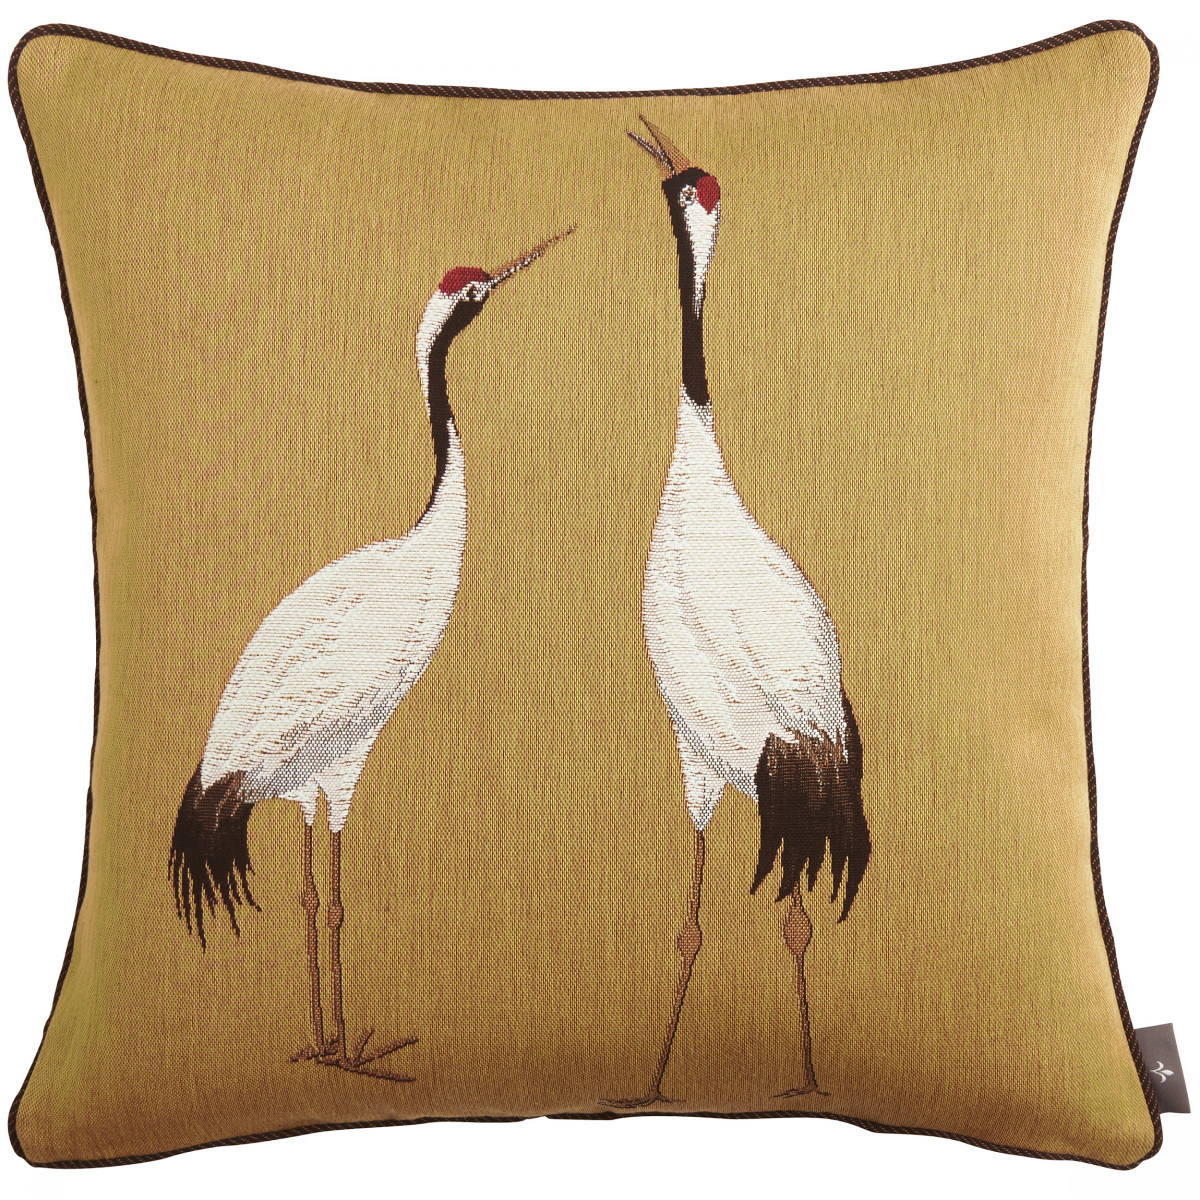 Coussin tapisserie deux grues blanches made in france jaune   50x50